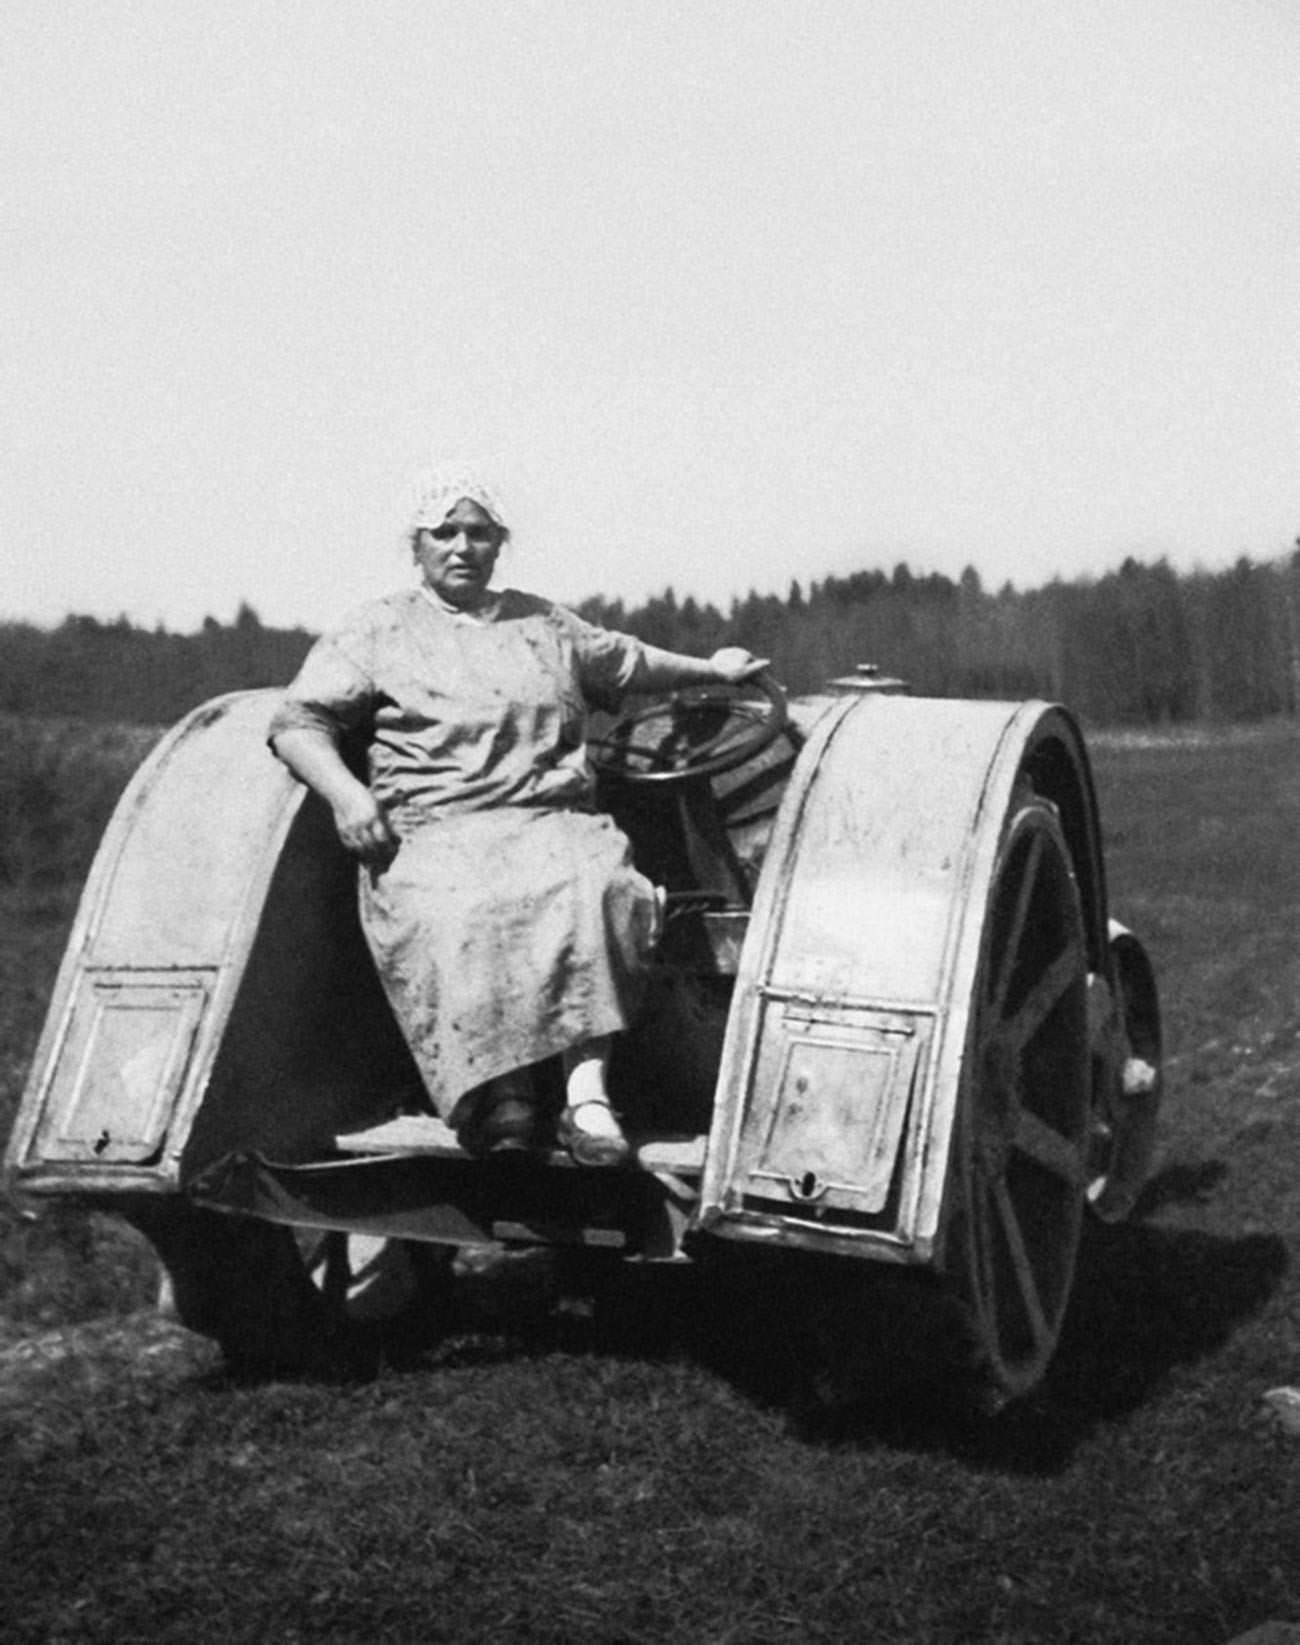 An old woman posing on a tractor